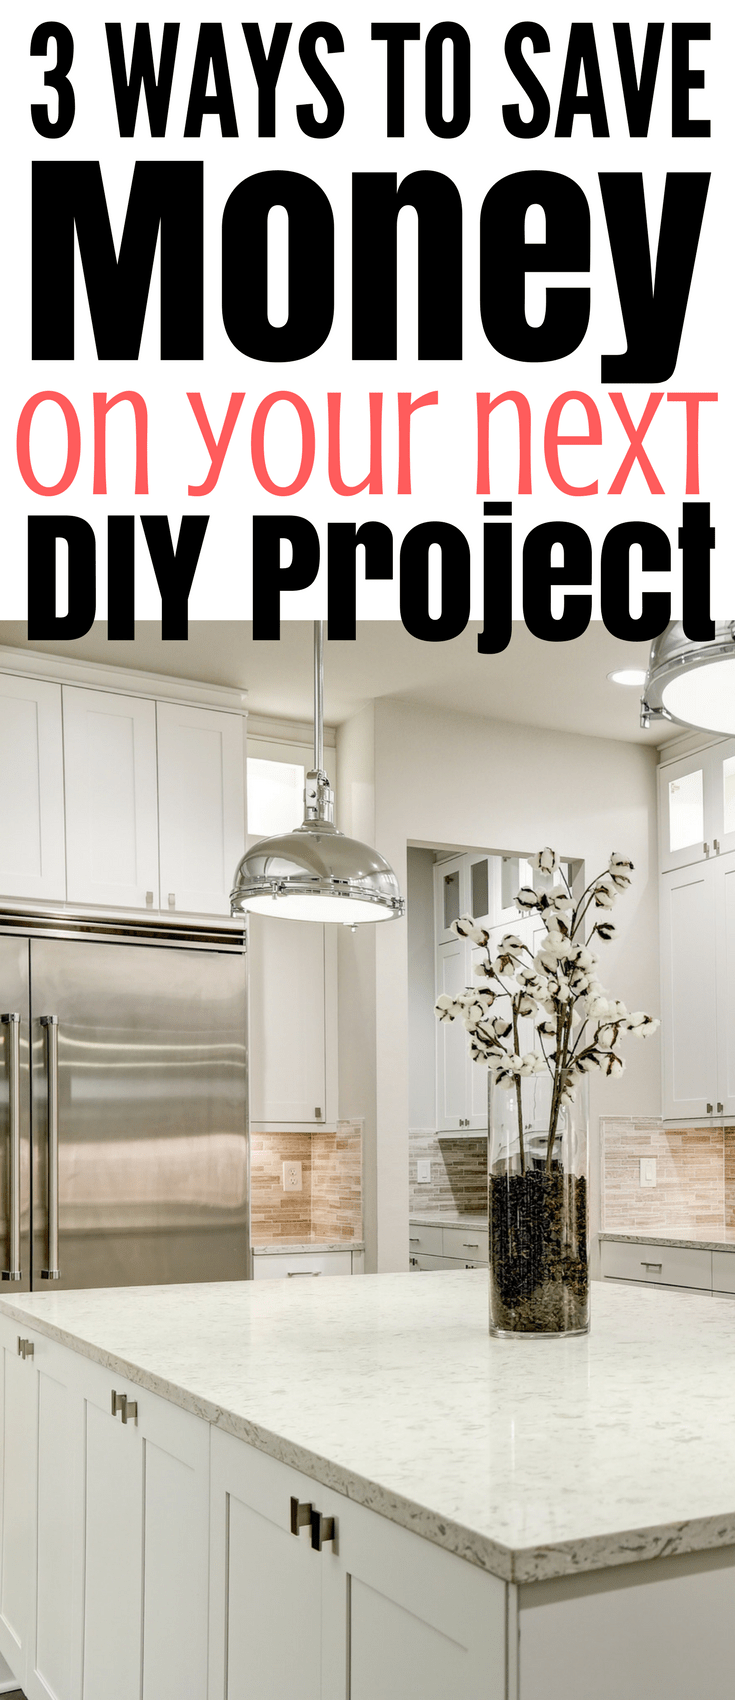 3 Ways To Save Money On Your Next DIY Project